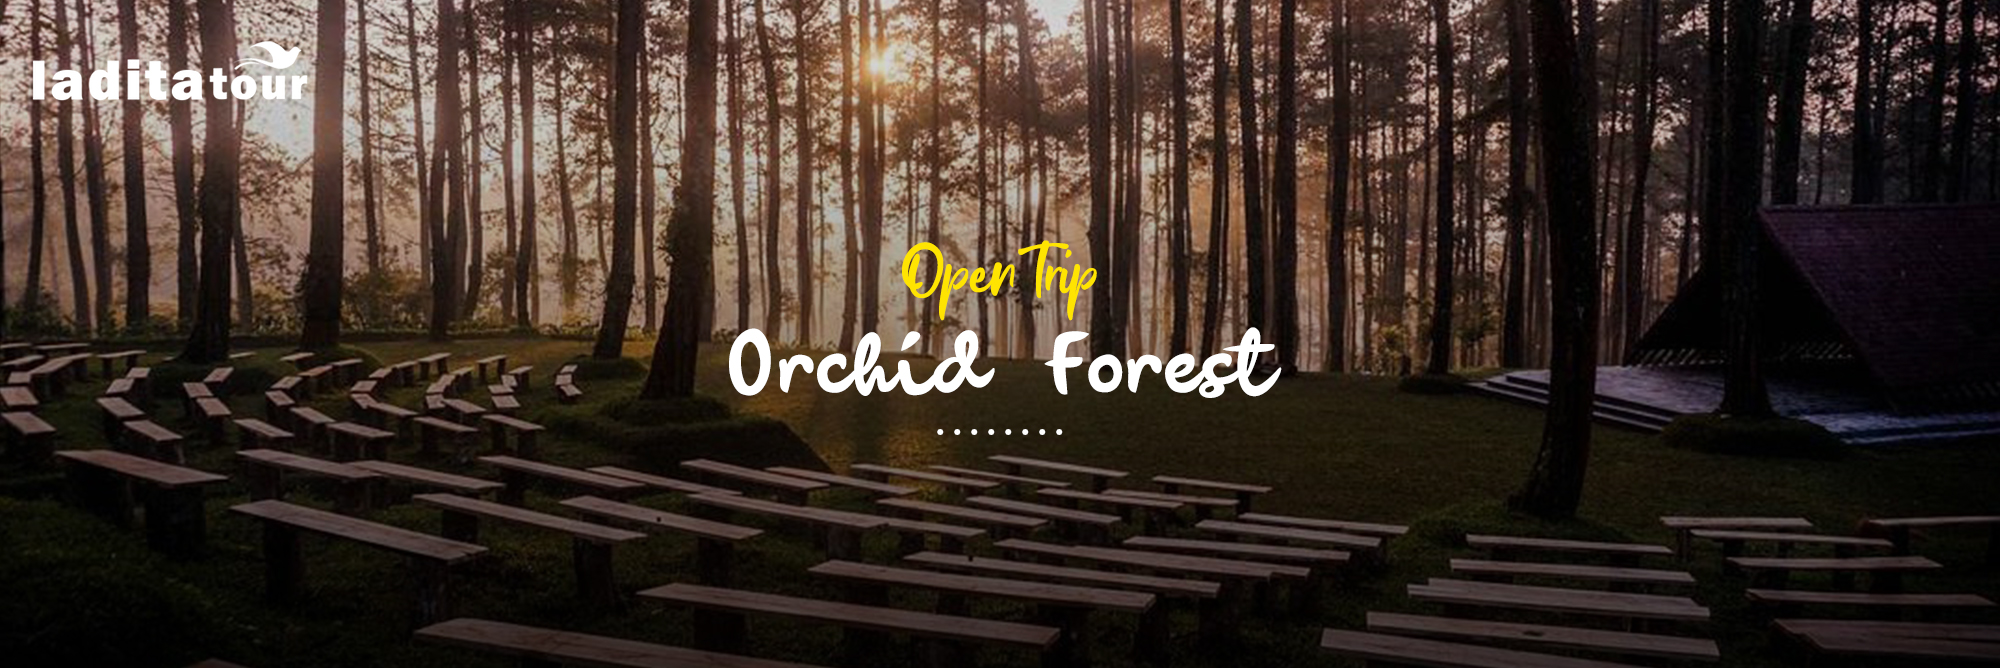 Open Trip Lembang Orchid Forest